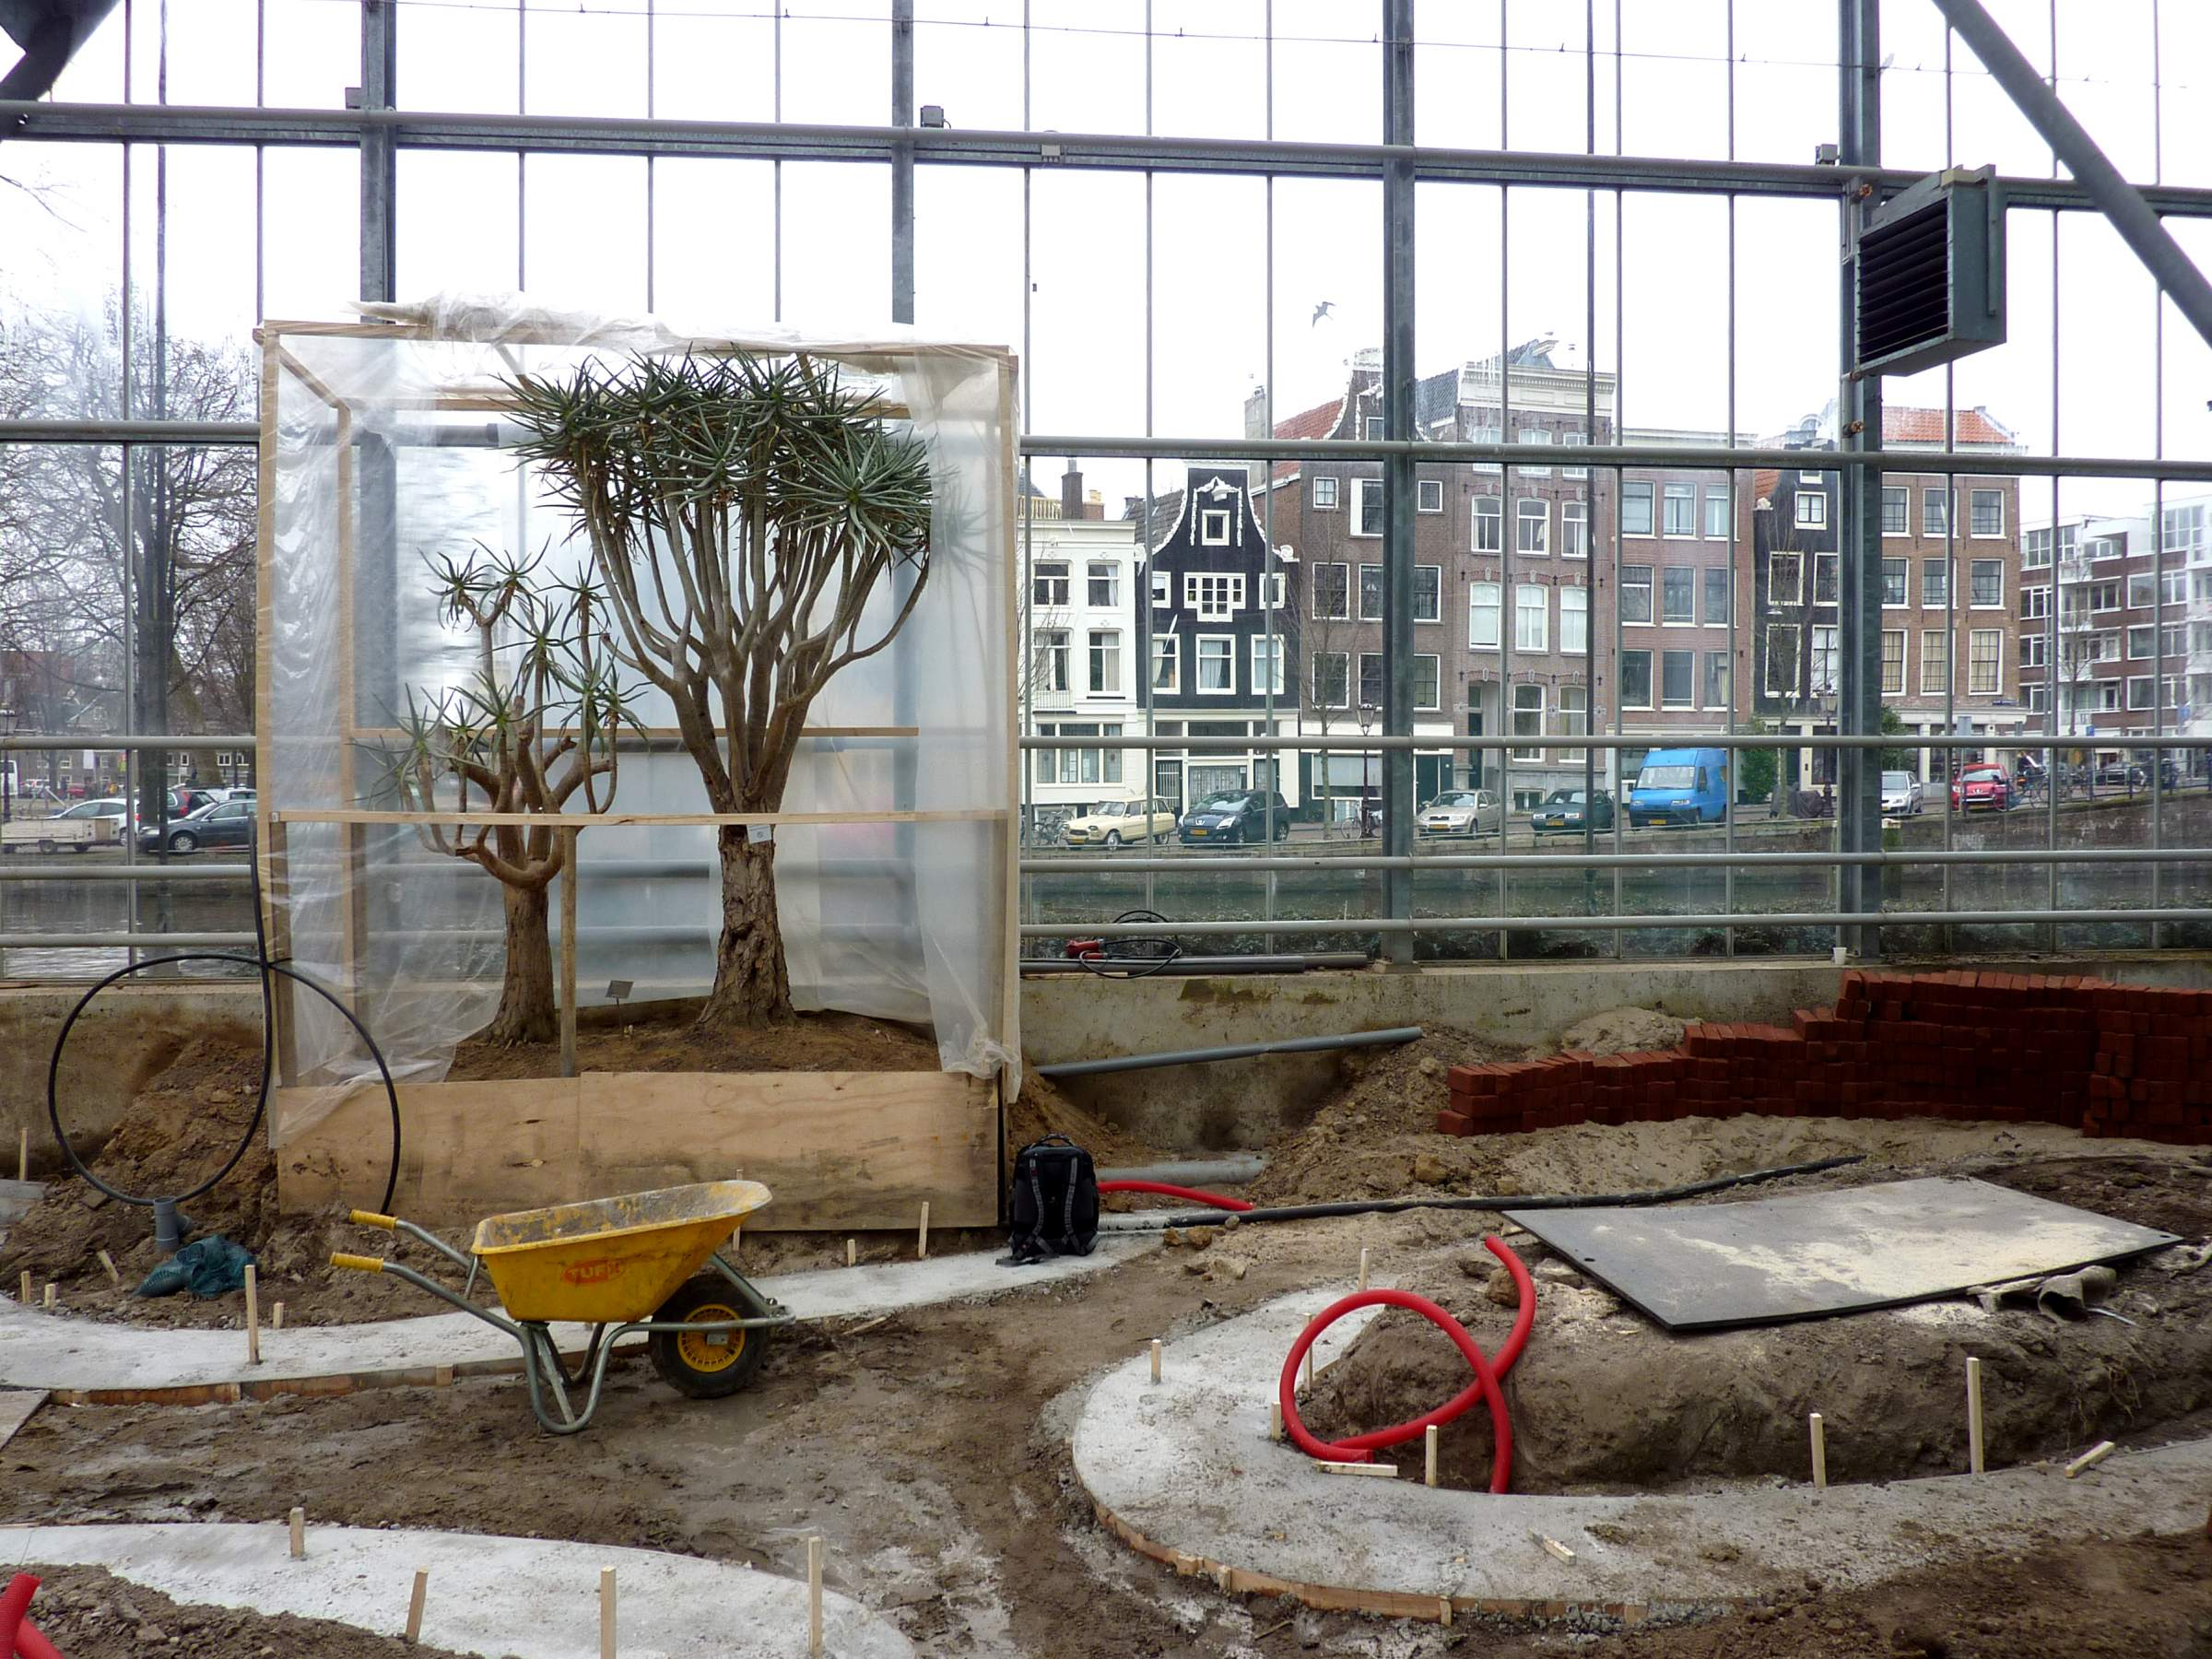 LANDLAB Hortus Botanicus Amsterdam Desert Green House_under Construction